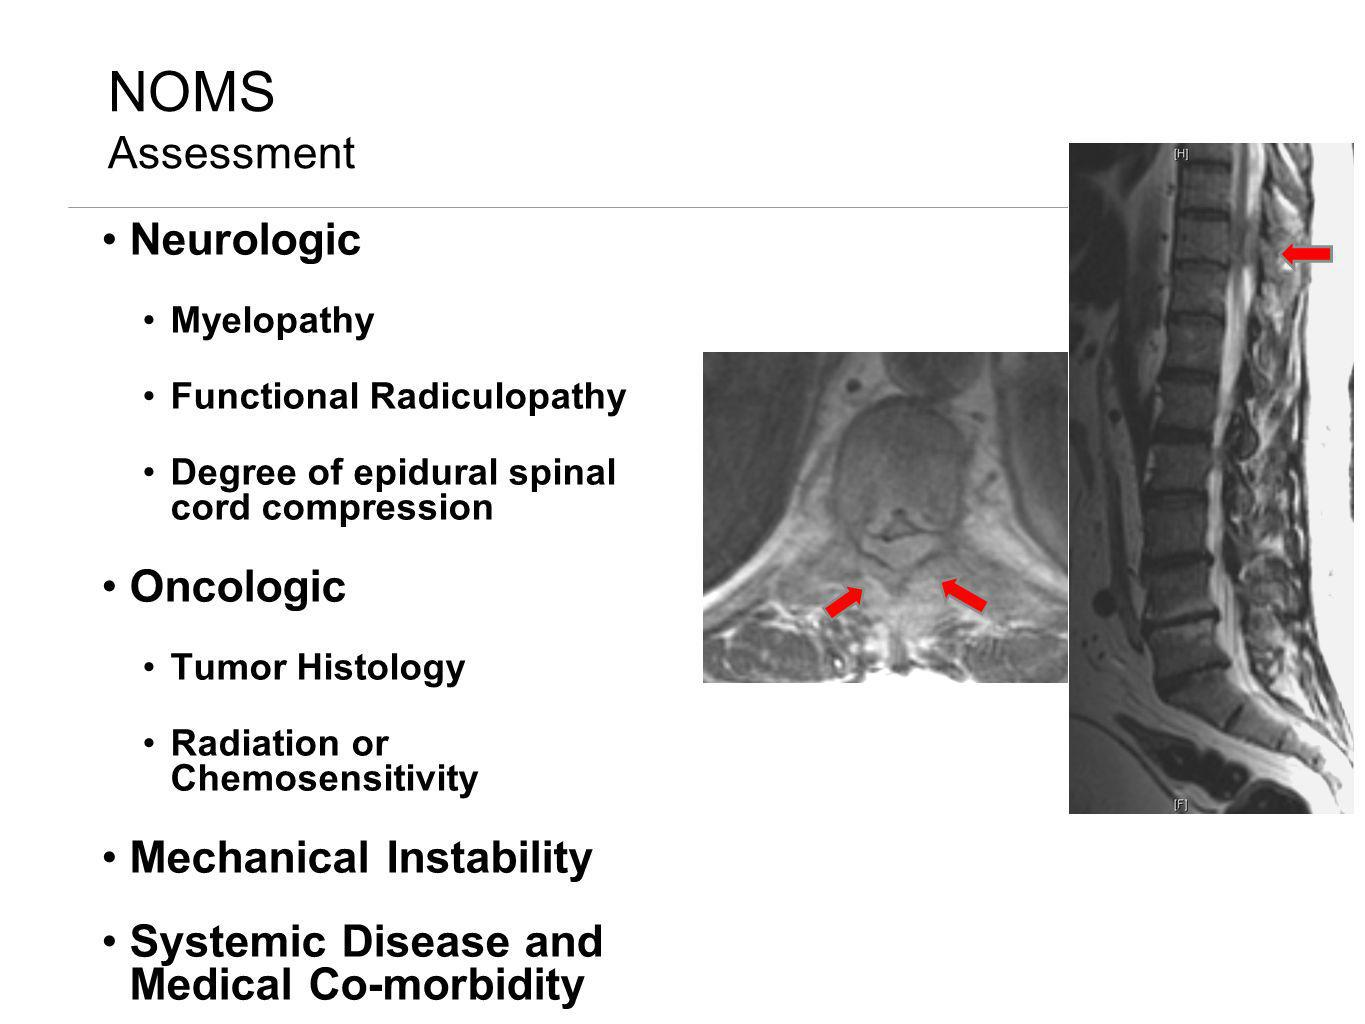 NOMS Assessment Neurologic Oncologic Mechanical Instability